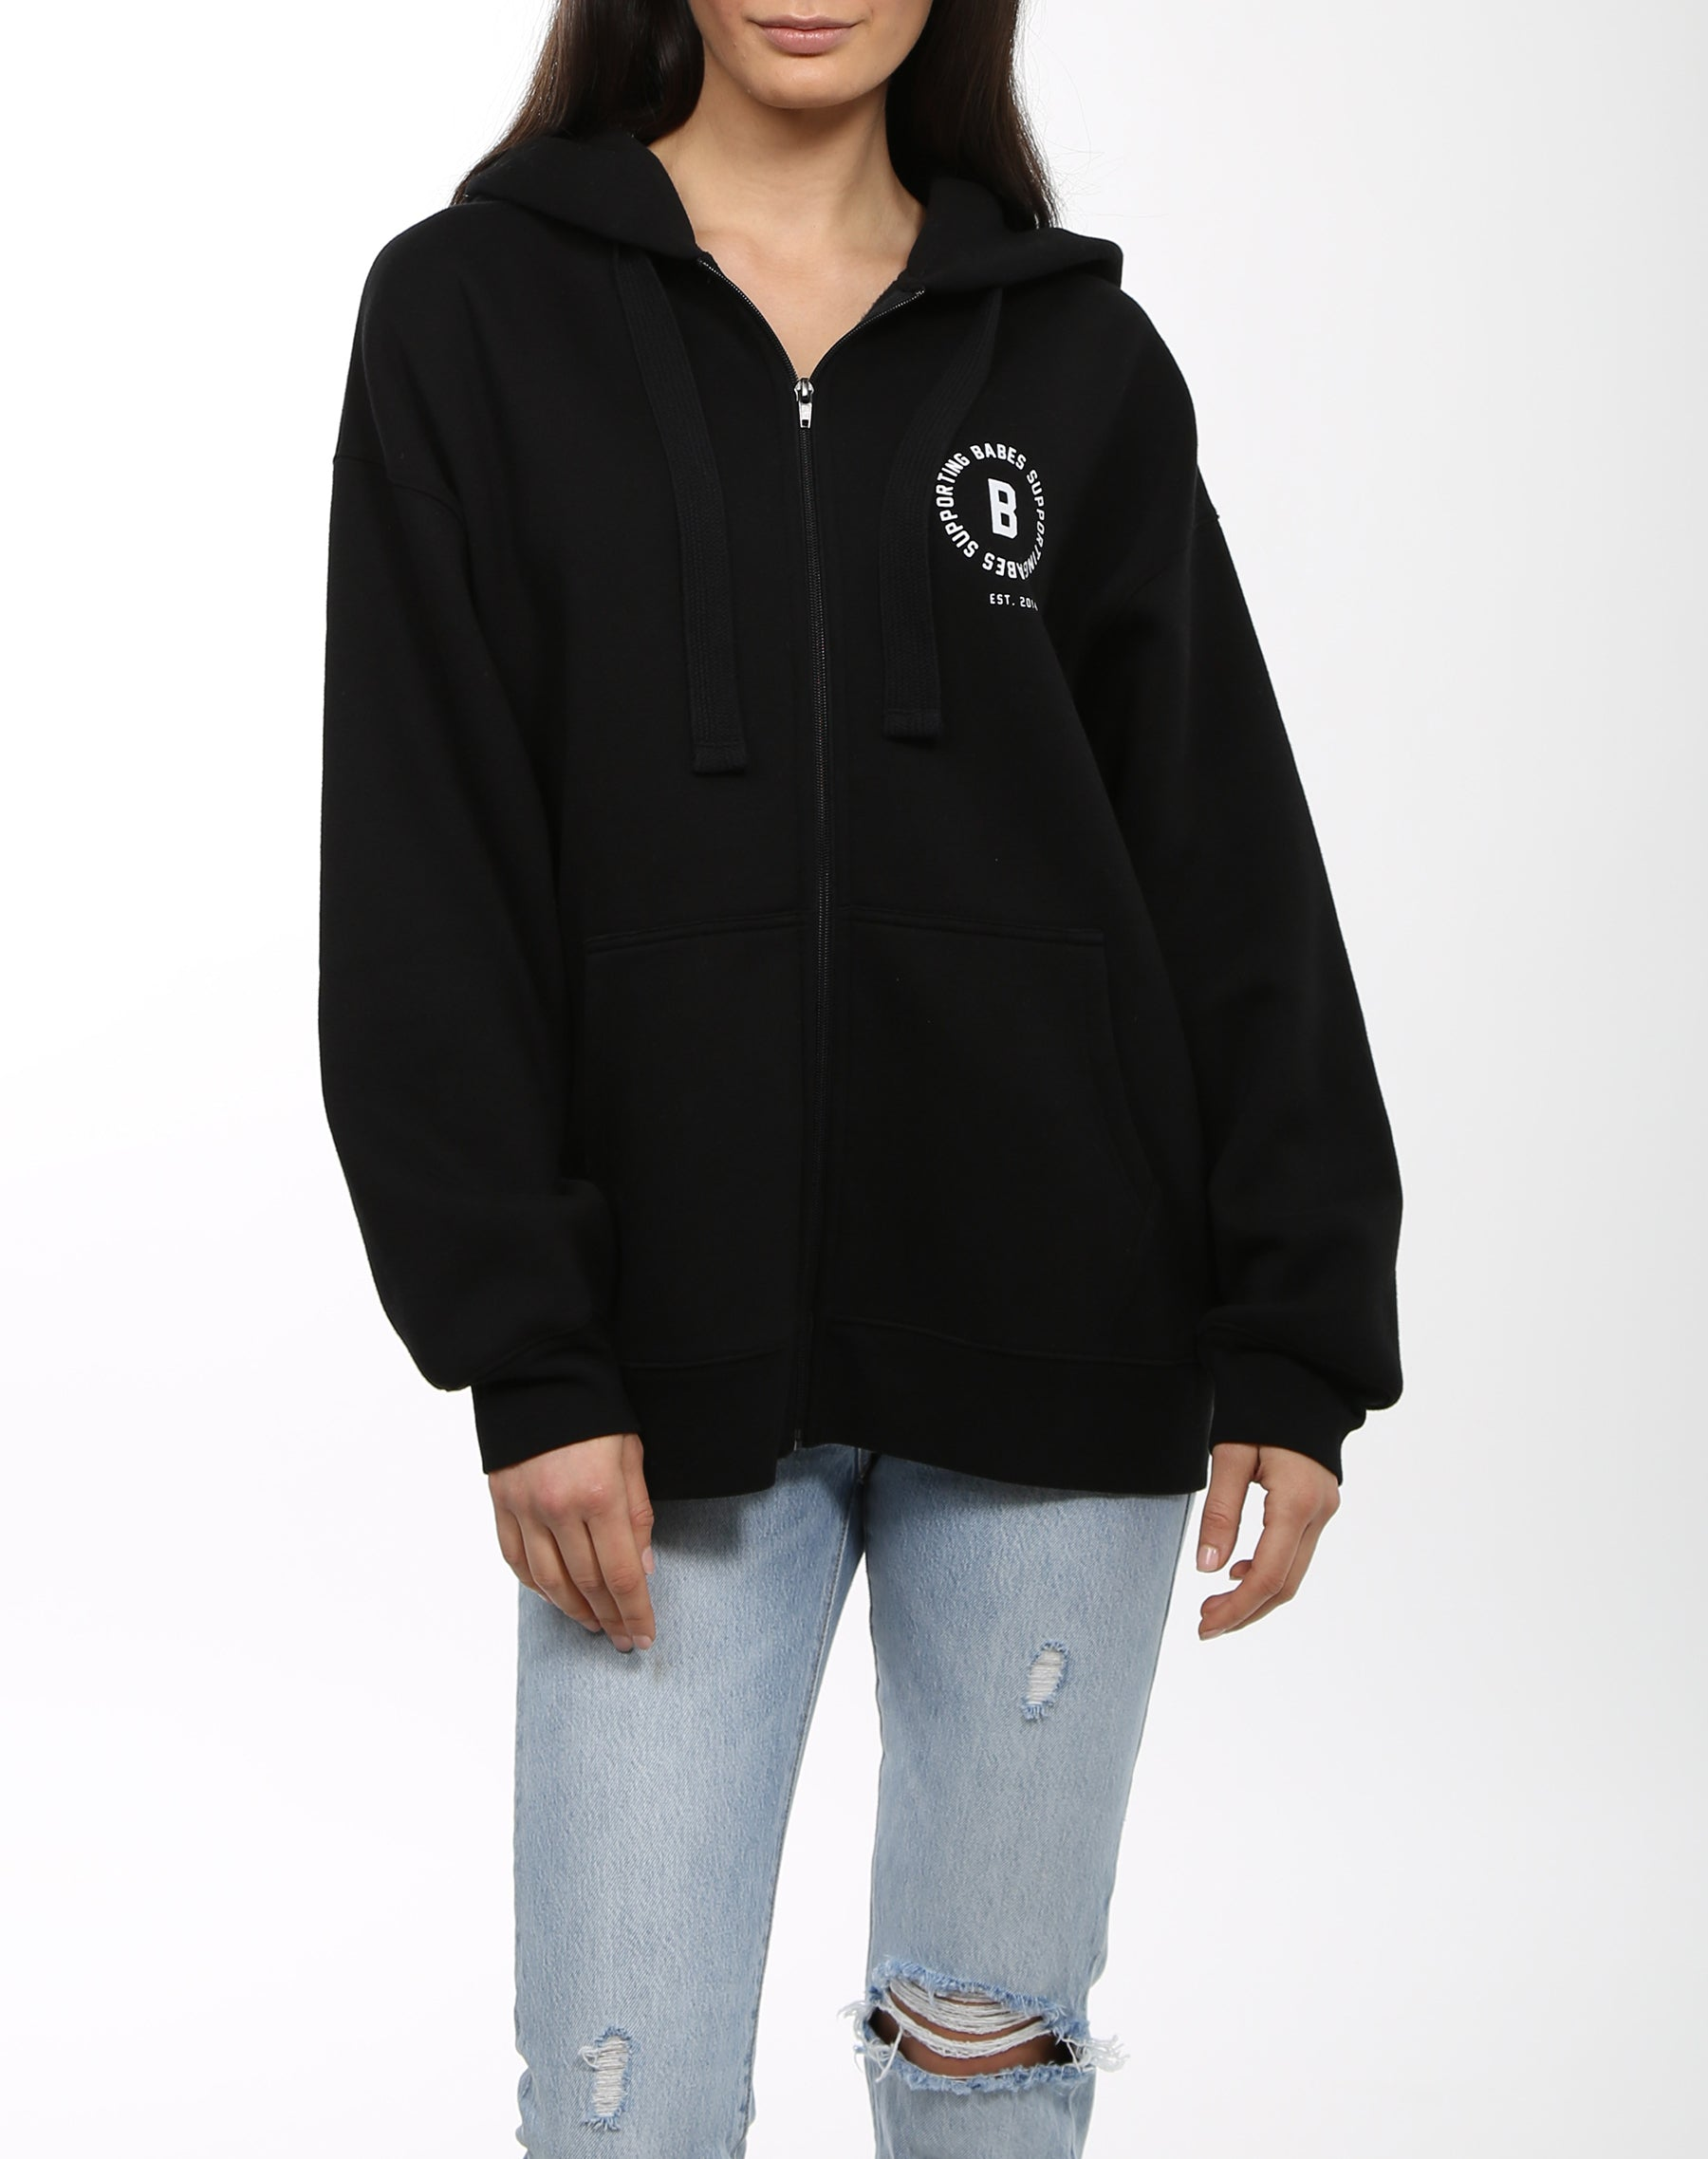 Photo 5 of the Babes Supporting Babes big sister zip up hoodie in black by Brunette the Label.